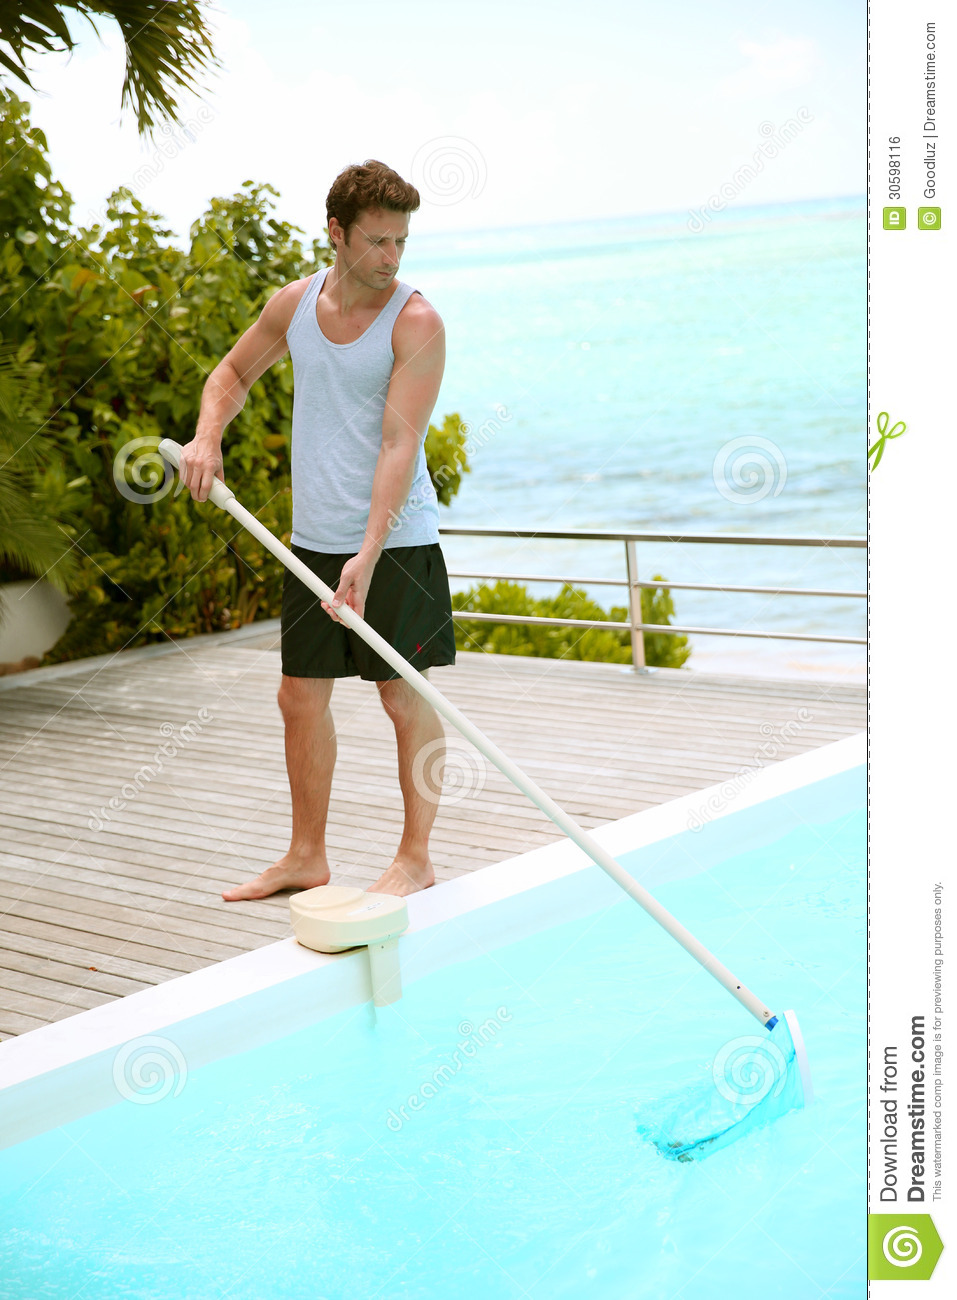 Man Cleaning Private Pool Stock Photo Image Of Condo 30598116